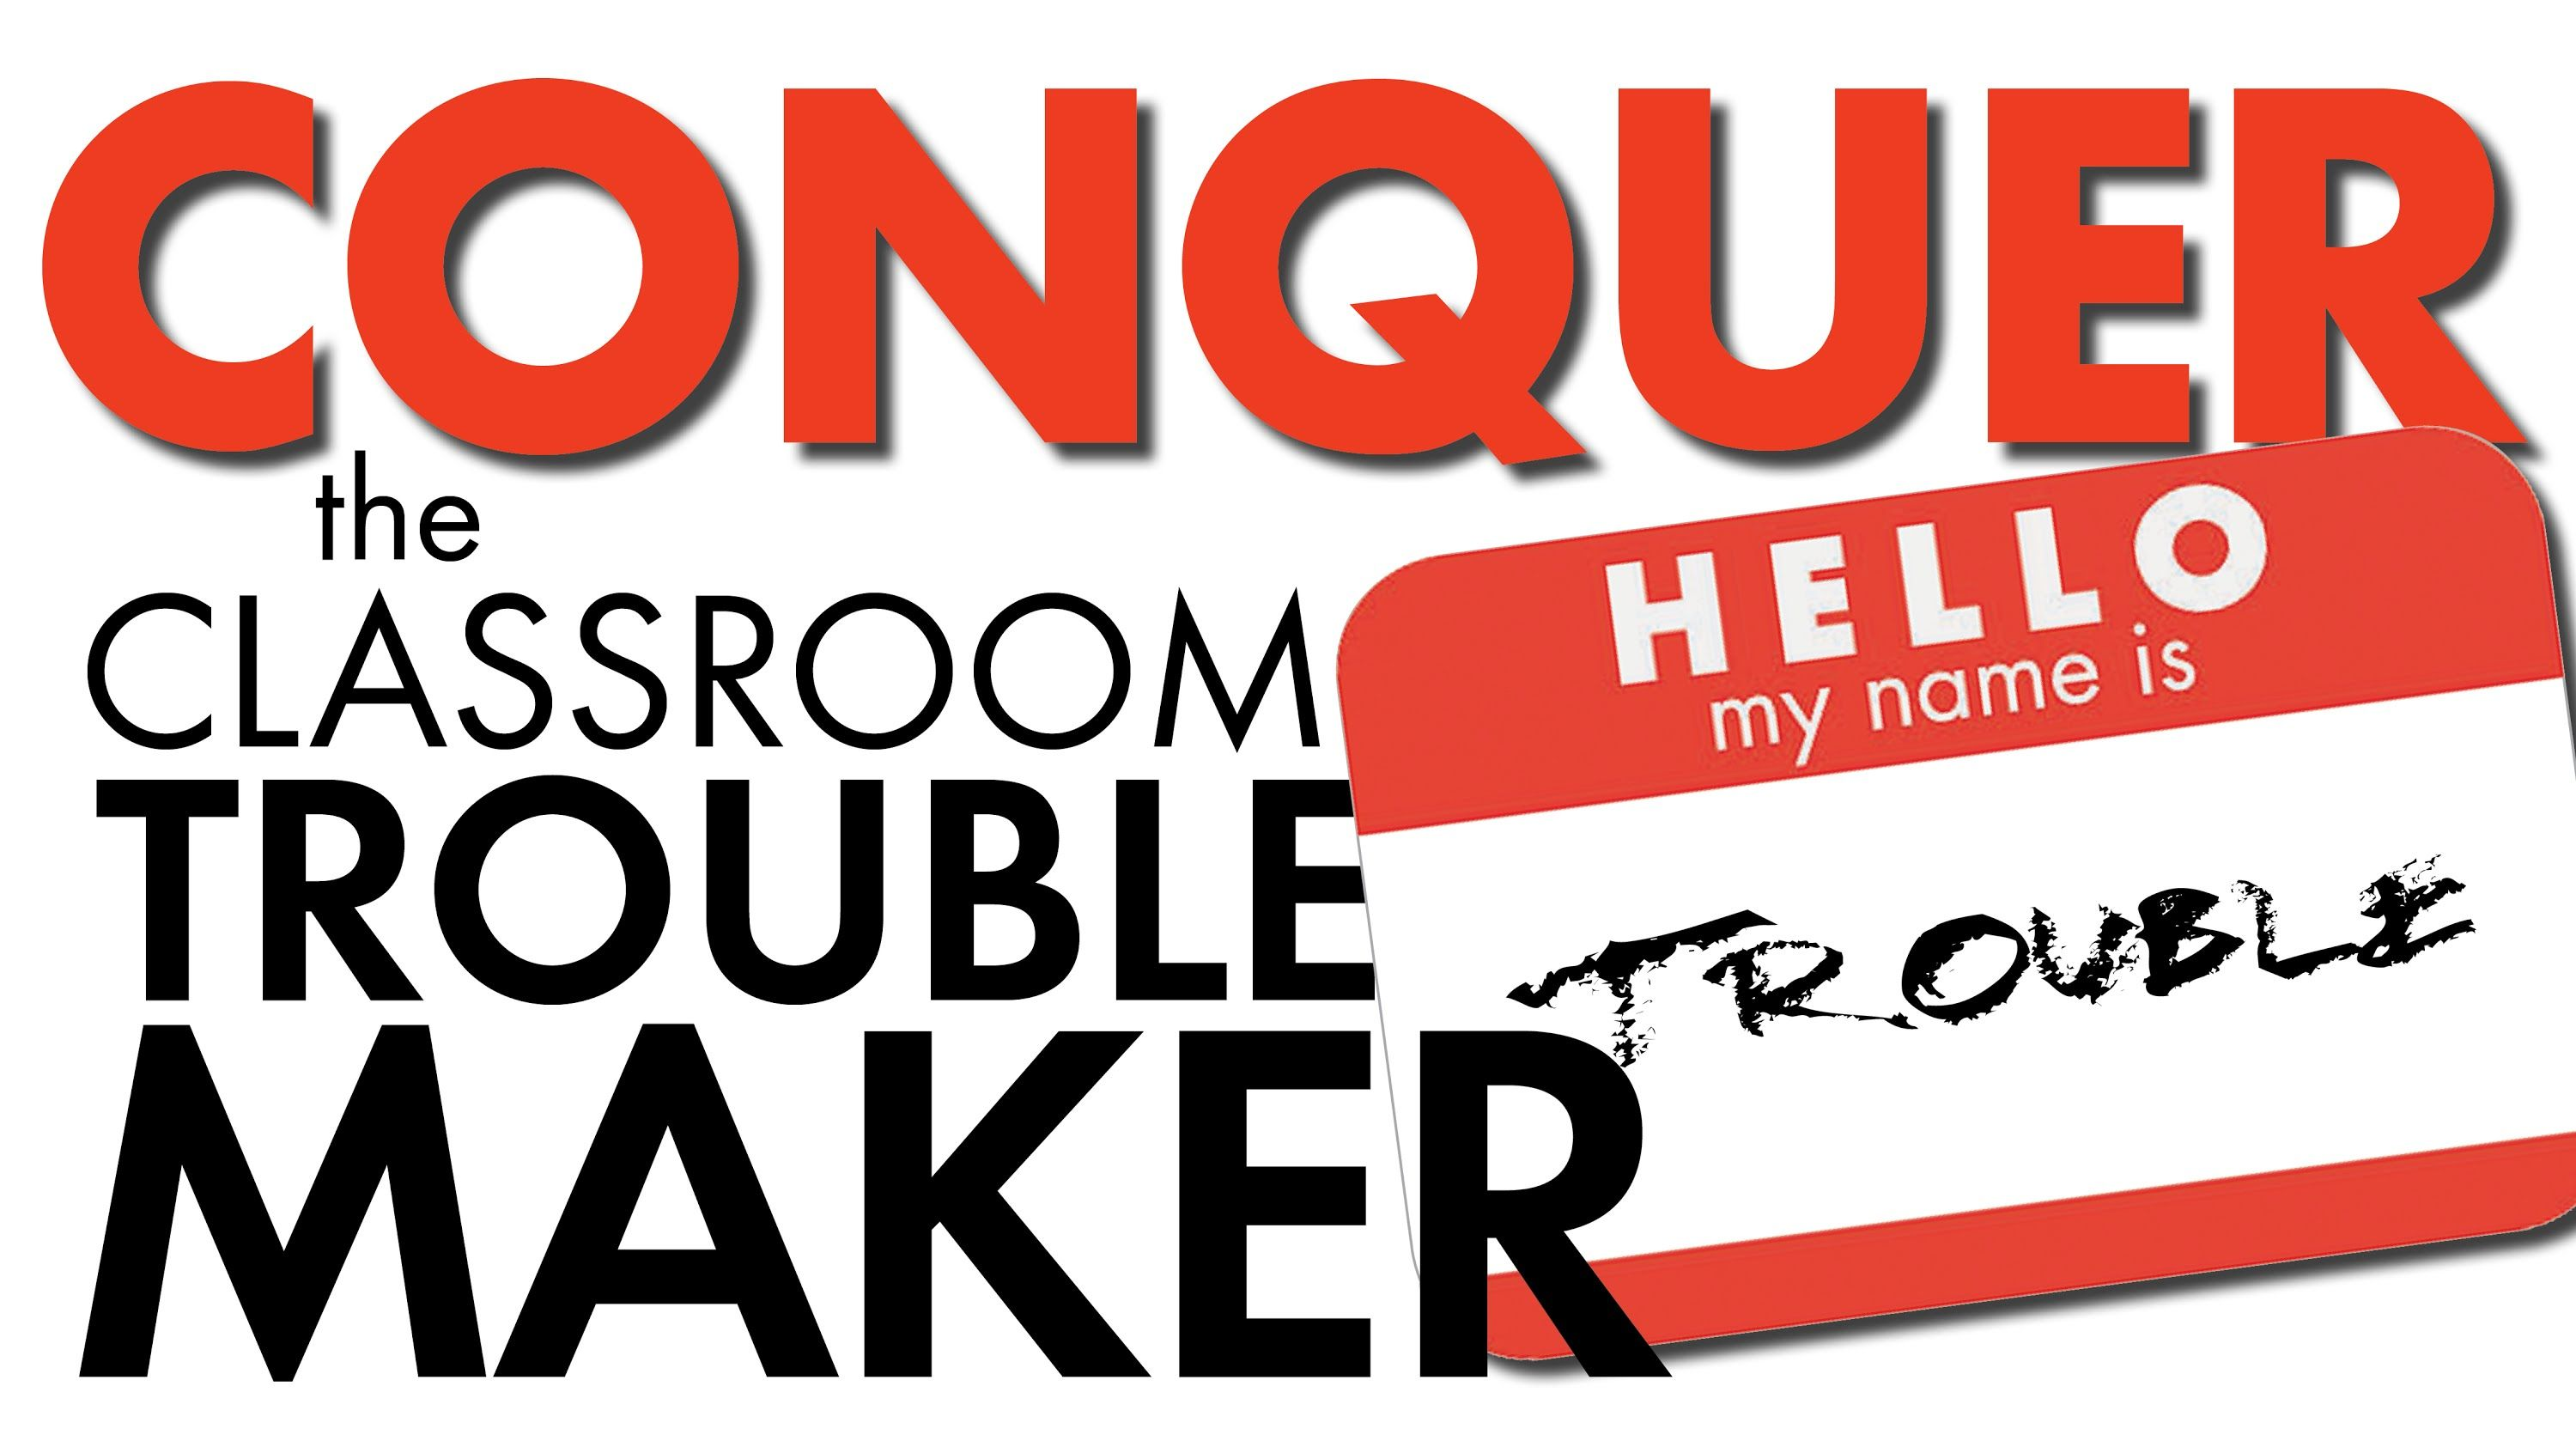 How to Conquer the Classroom Troublemaker - Great Video with 4 Clear Steps